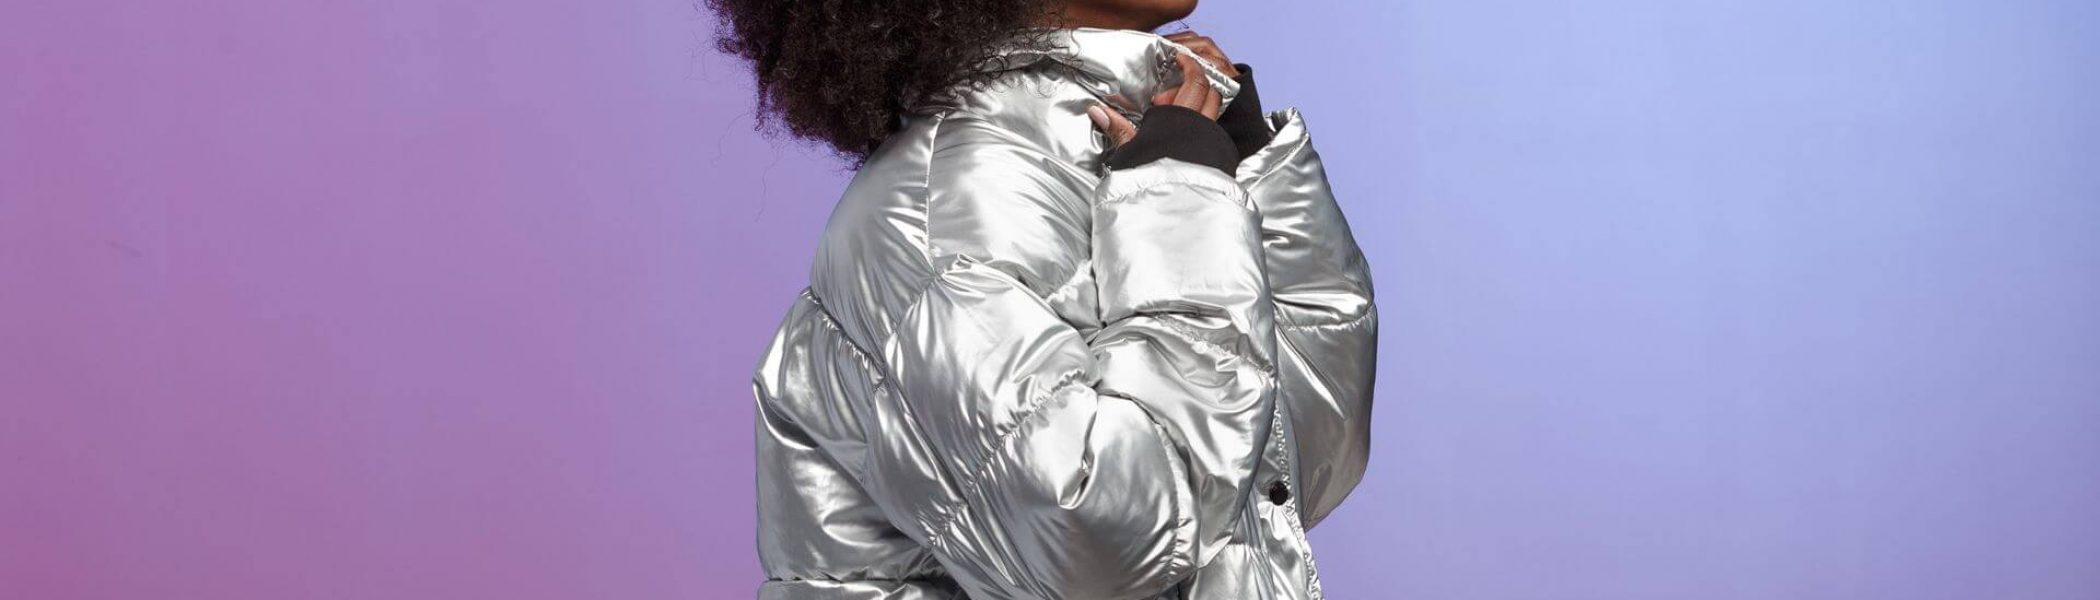 Trendy curly brown-haired girl dressed in a silver-colored jacket uses the virtual reality glasses in the studio on neon background .